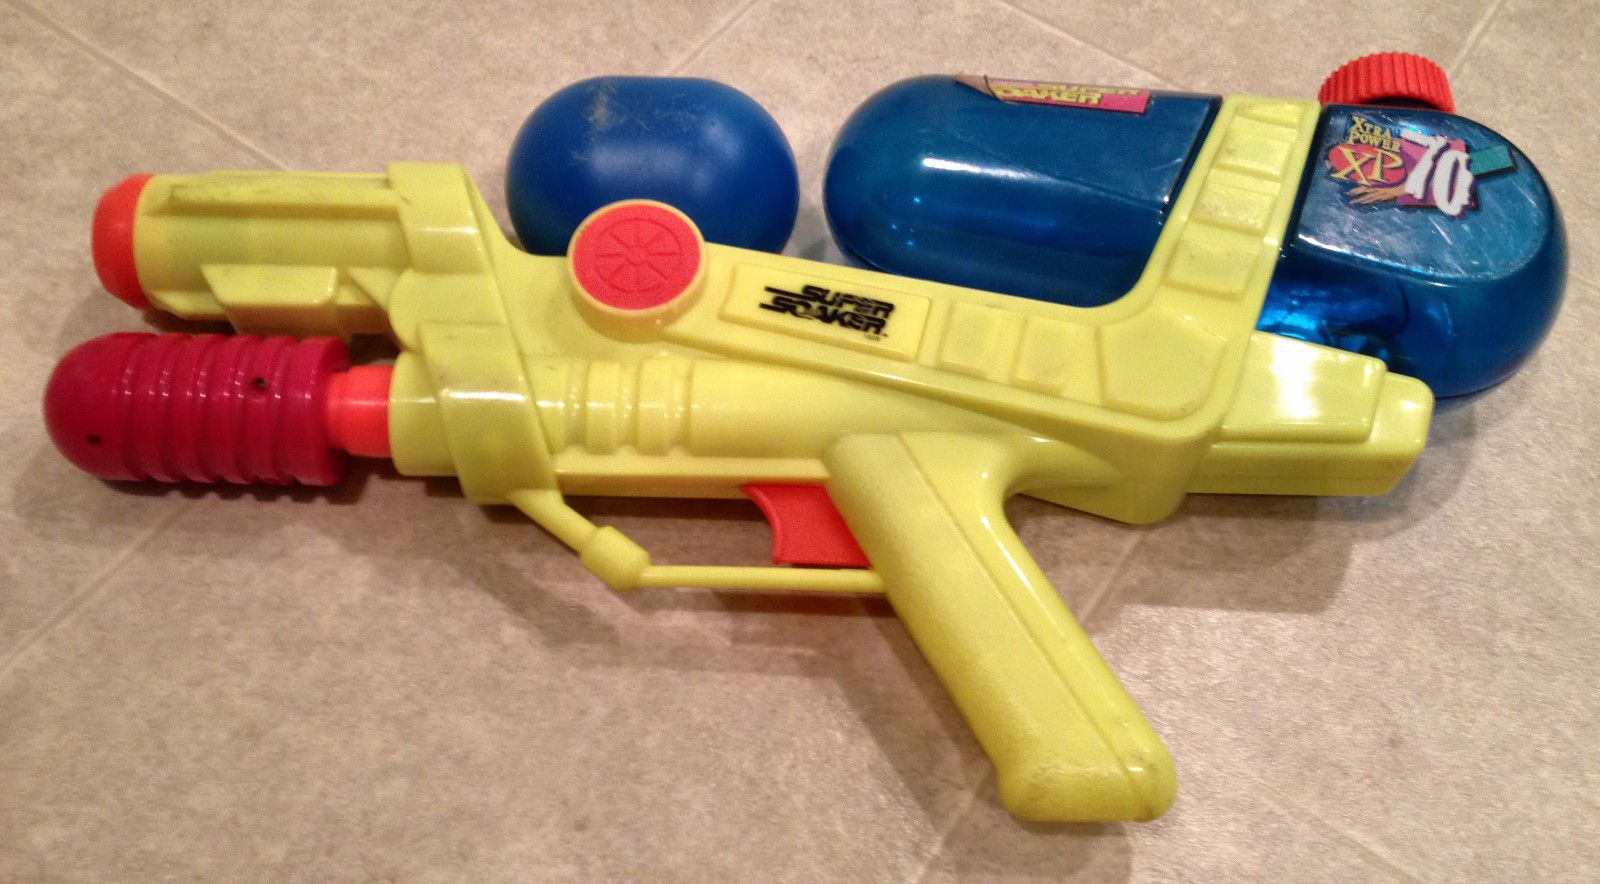 40 Most Valuable Toys From Childhood - Best Vintage Kids Toys